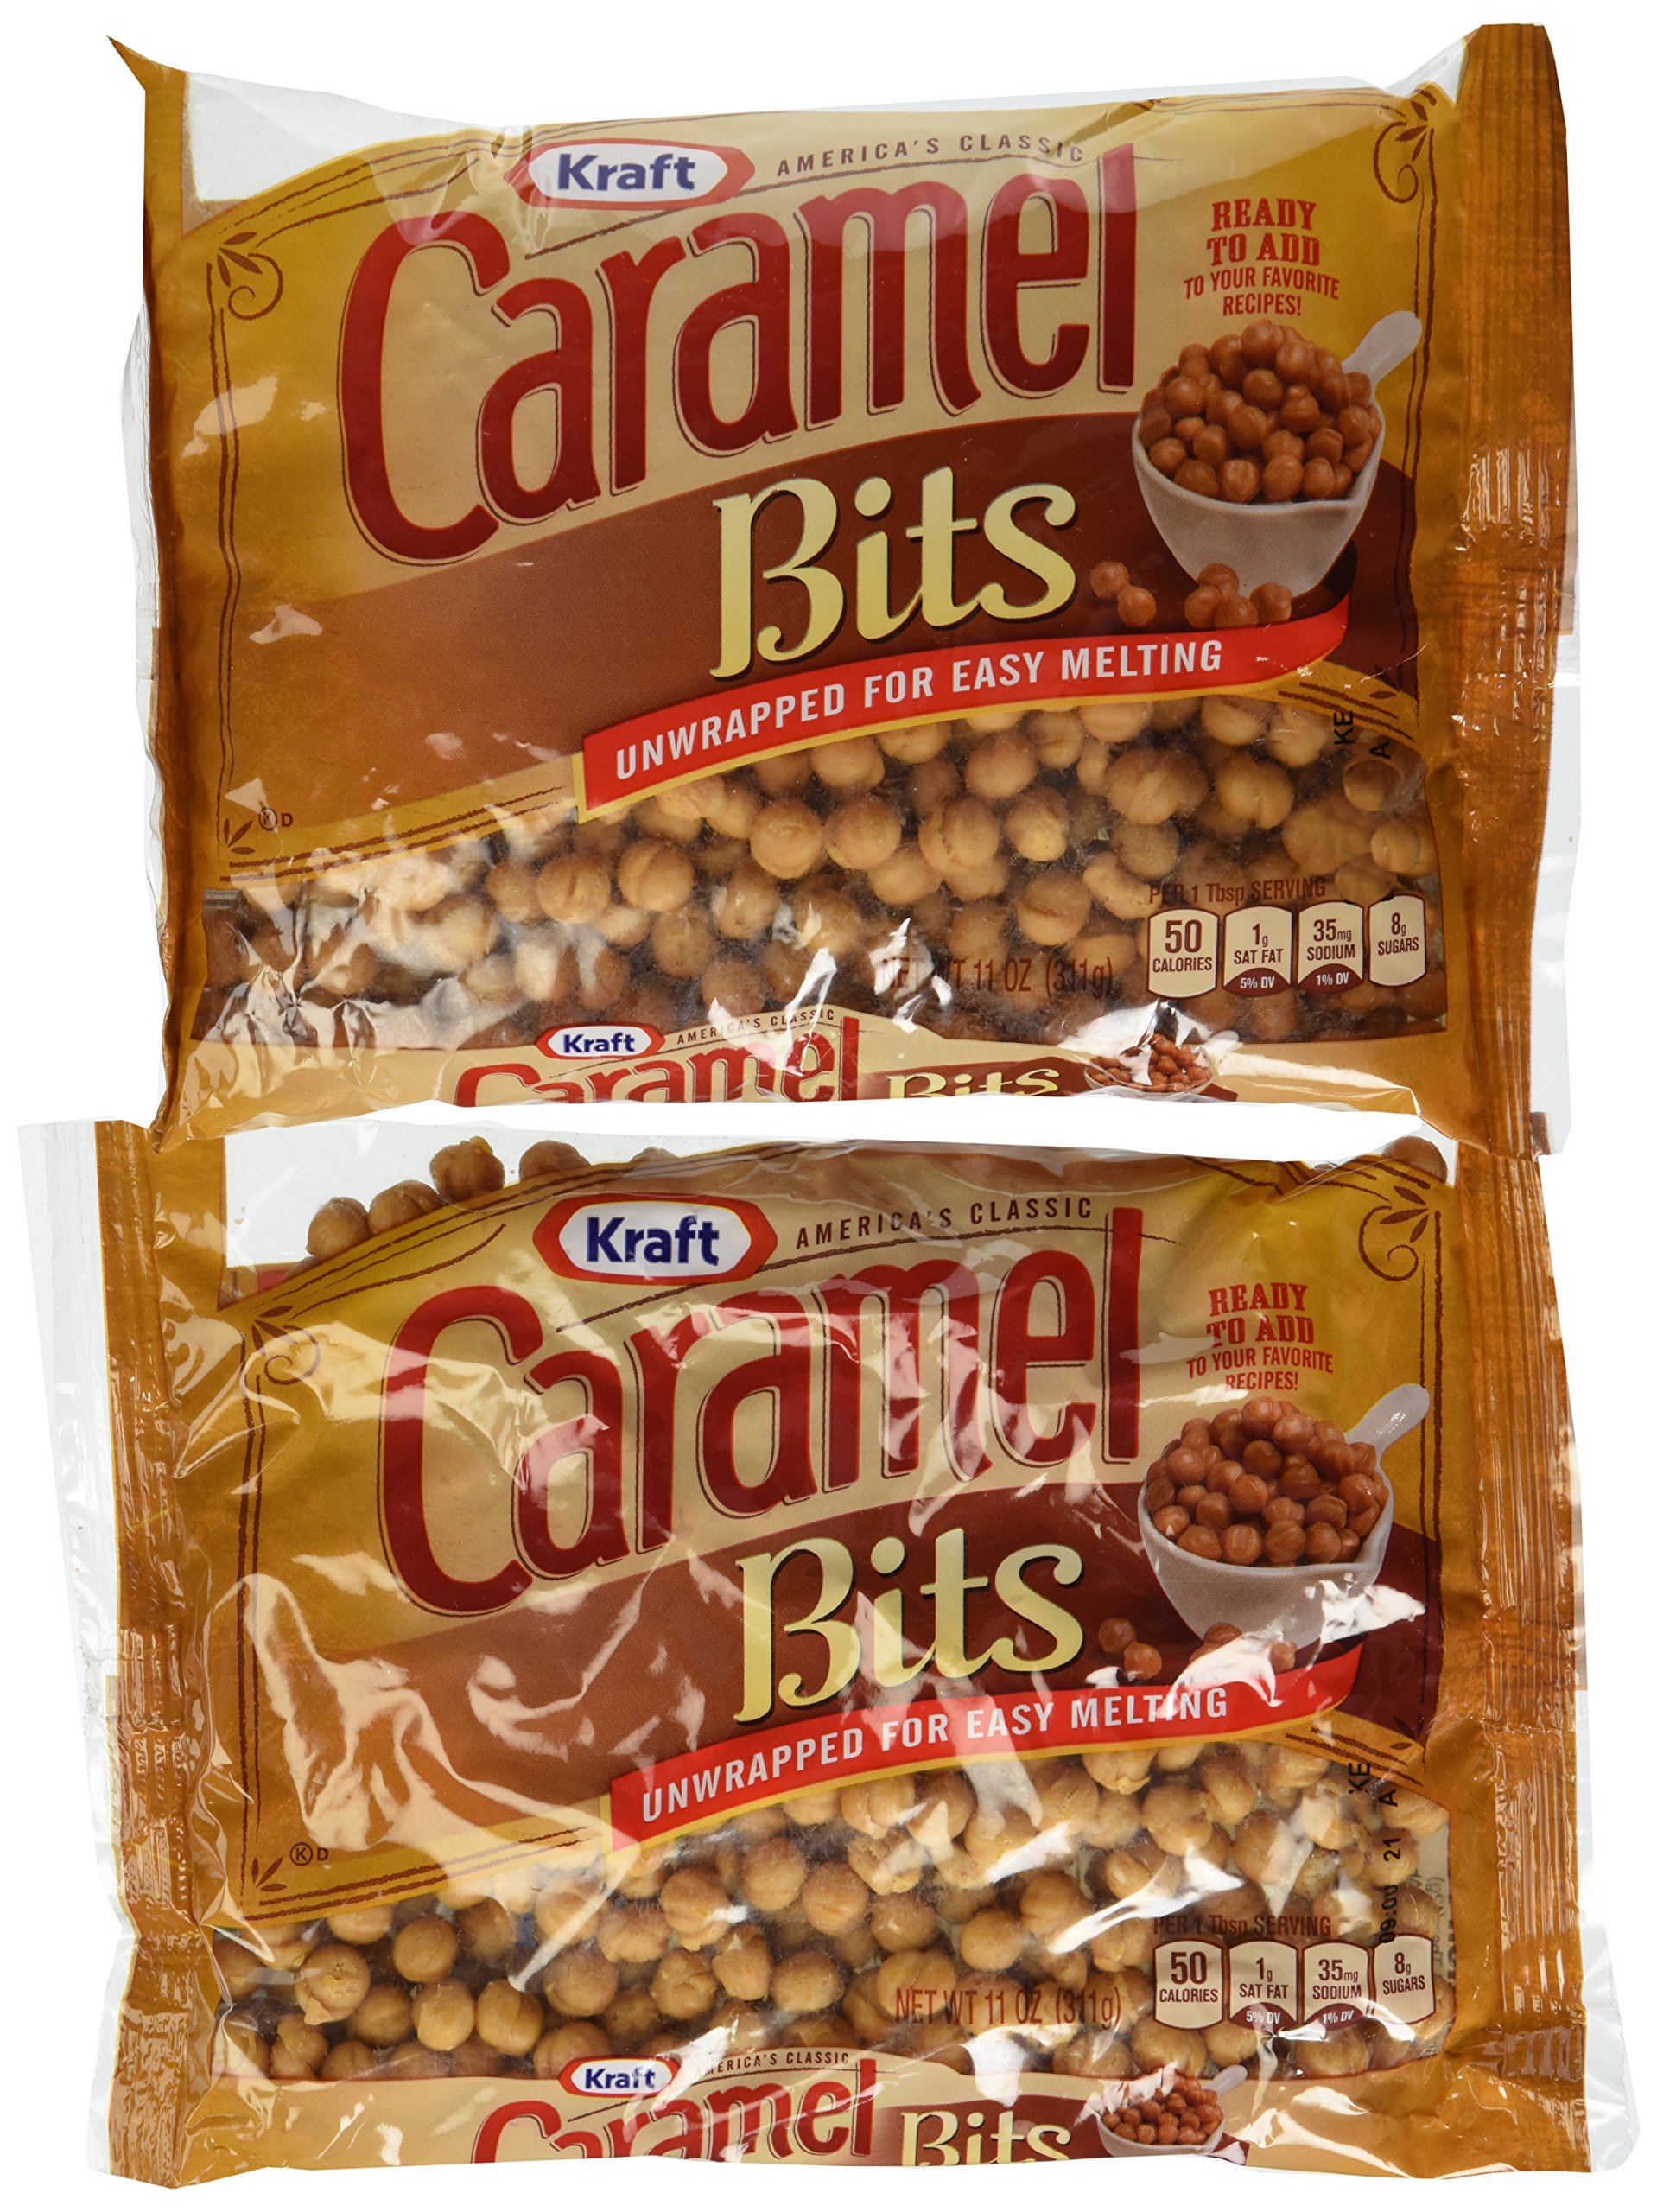 Kraft Caramel Candy Bits (11 oz Bags, Pack of 12) by Kraft